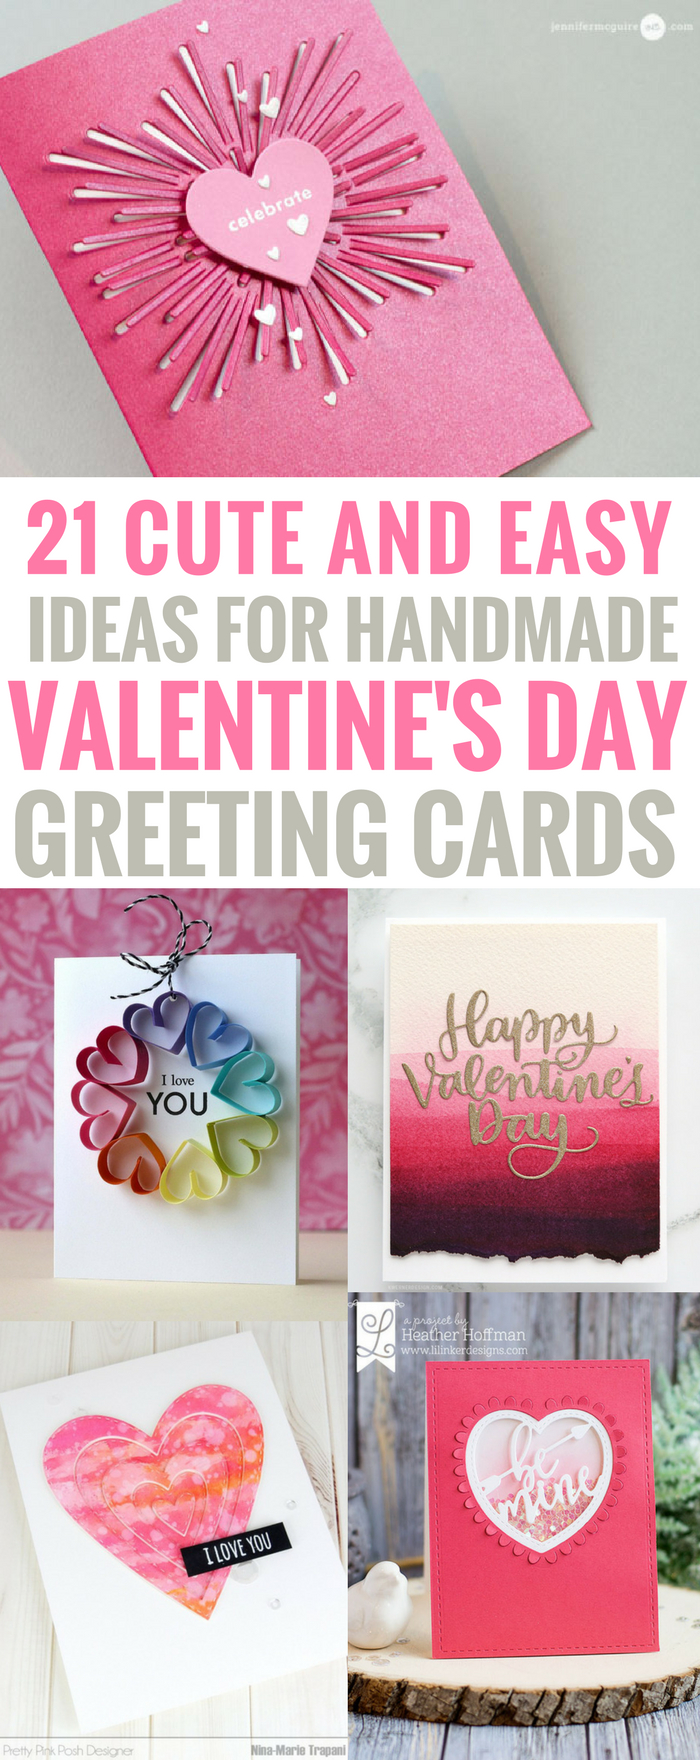 10 Best Valentine Card Ideas For Kids To Make 21 amazingly cute and easy ideas for handmade valentines day cards 2020